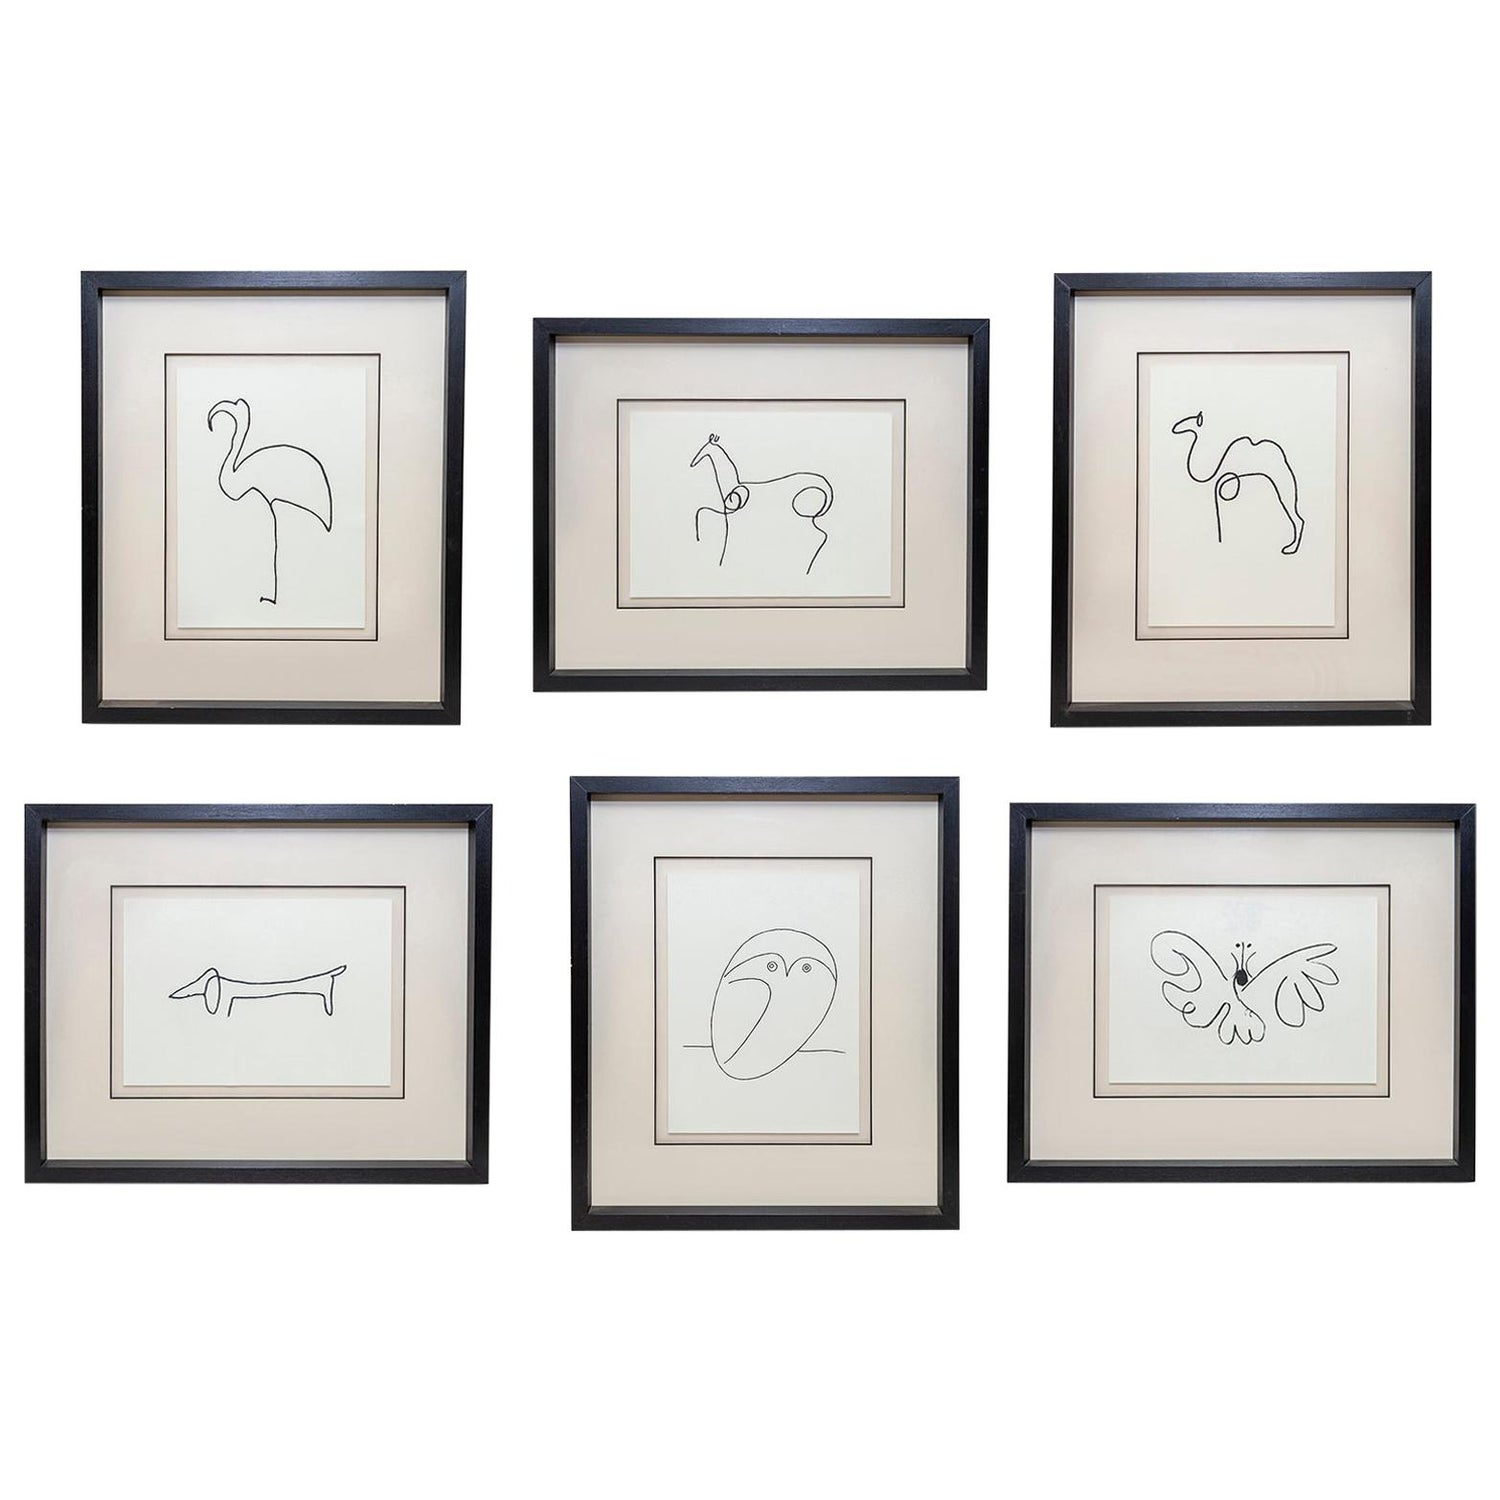 After Picasso Line Drawing Owl Set of 6 Butterfly Dog Horse Camel Flamingo Print